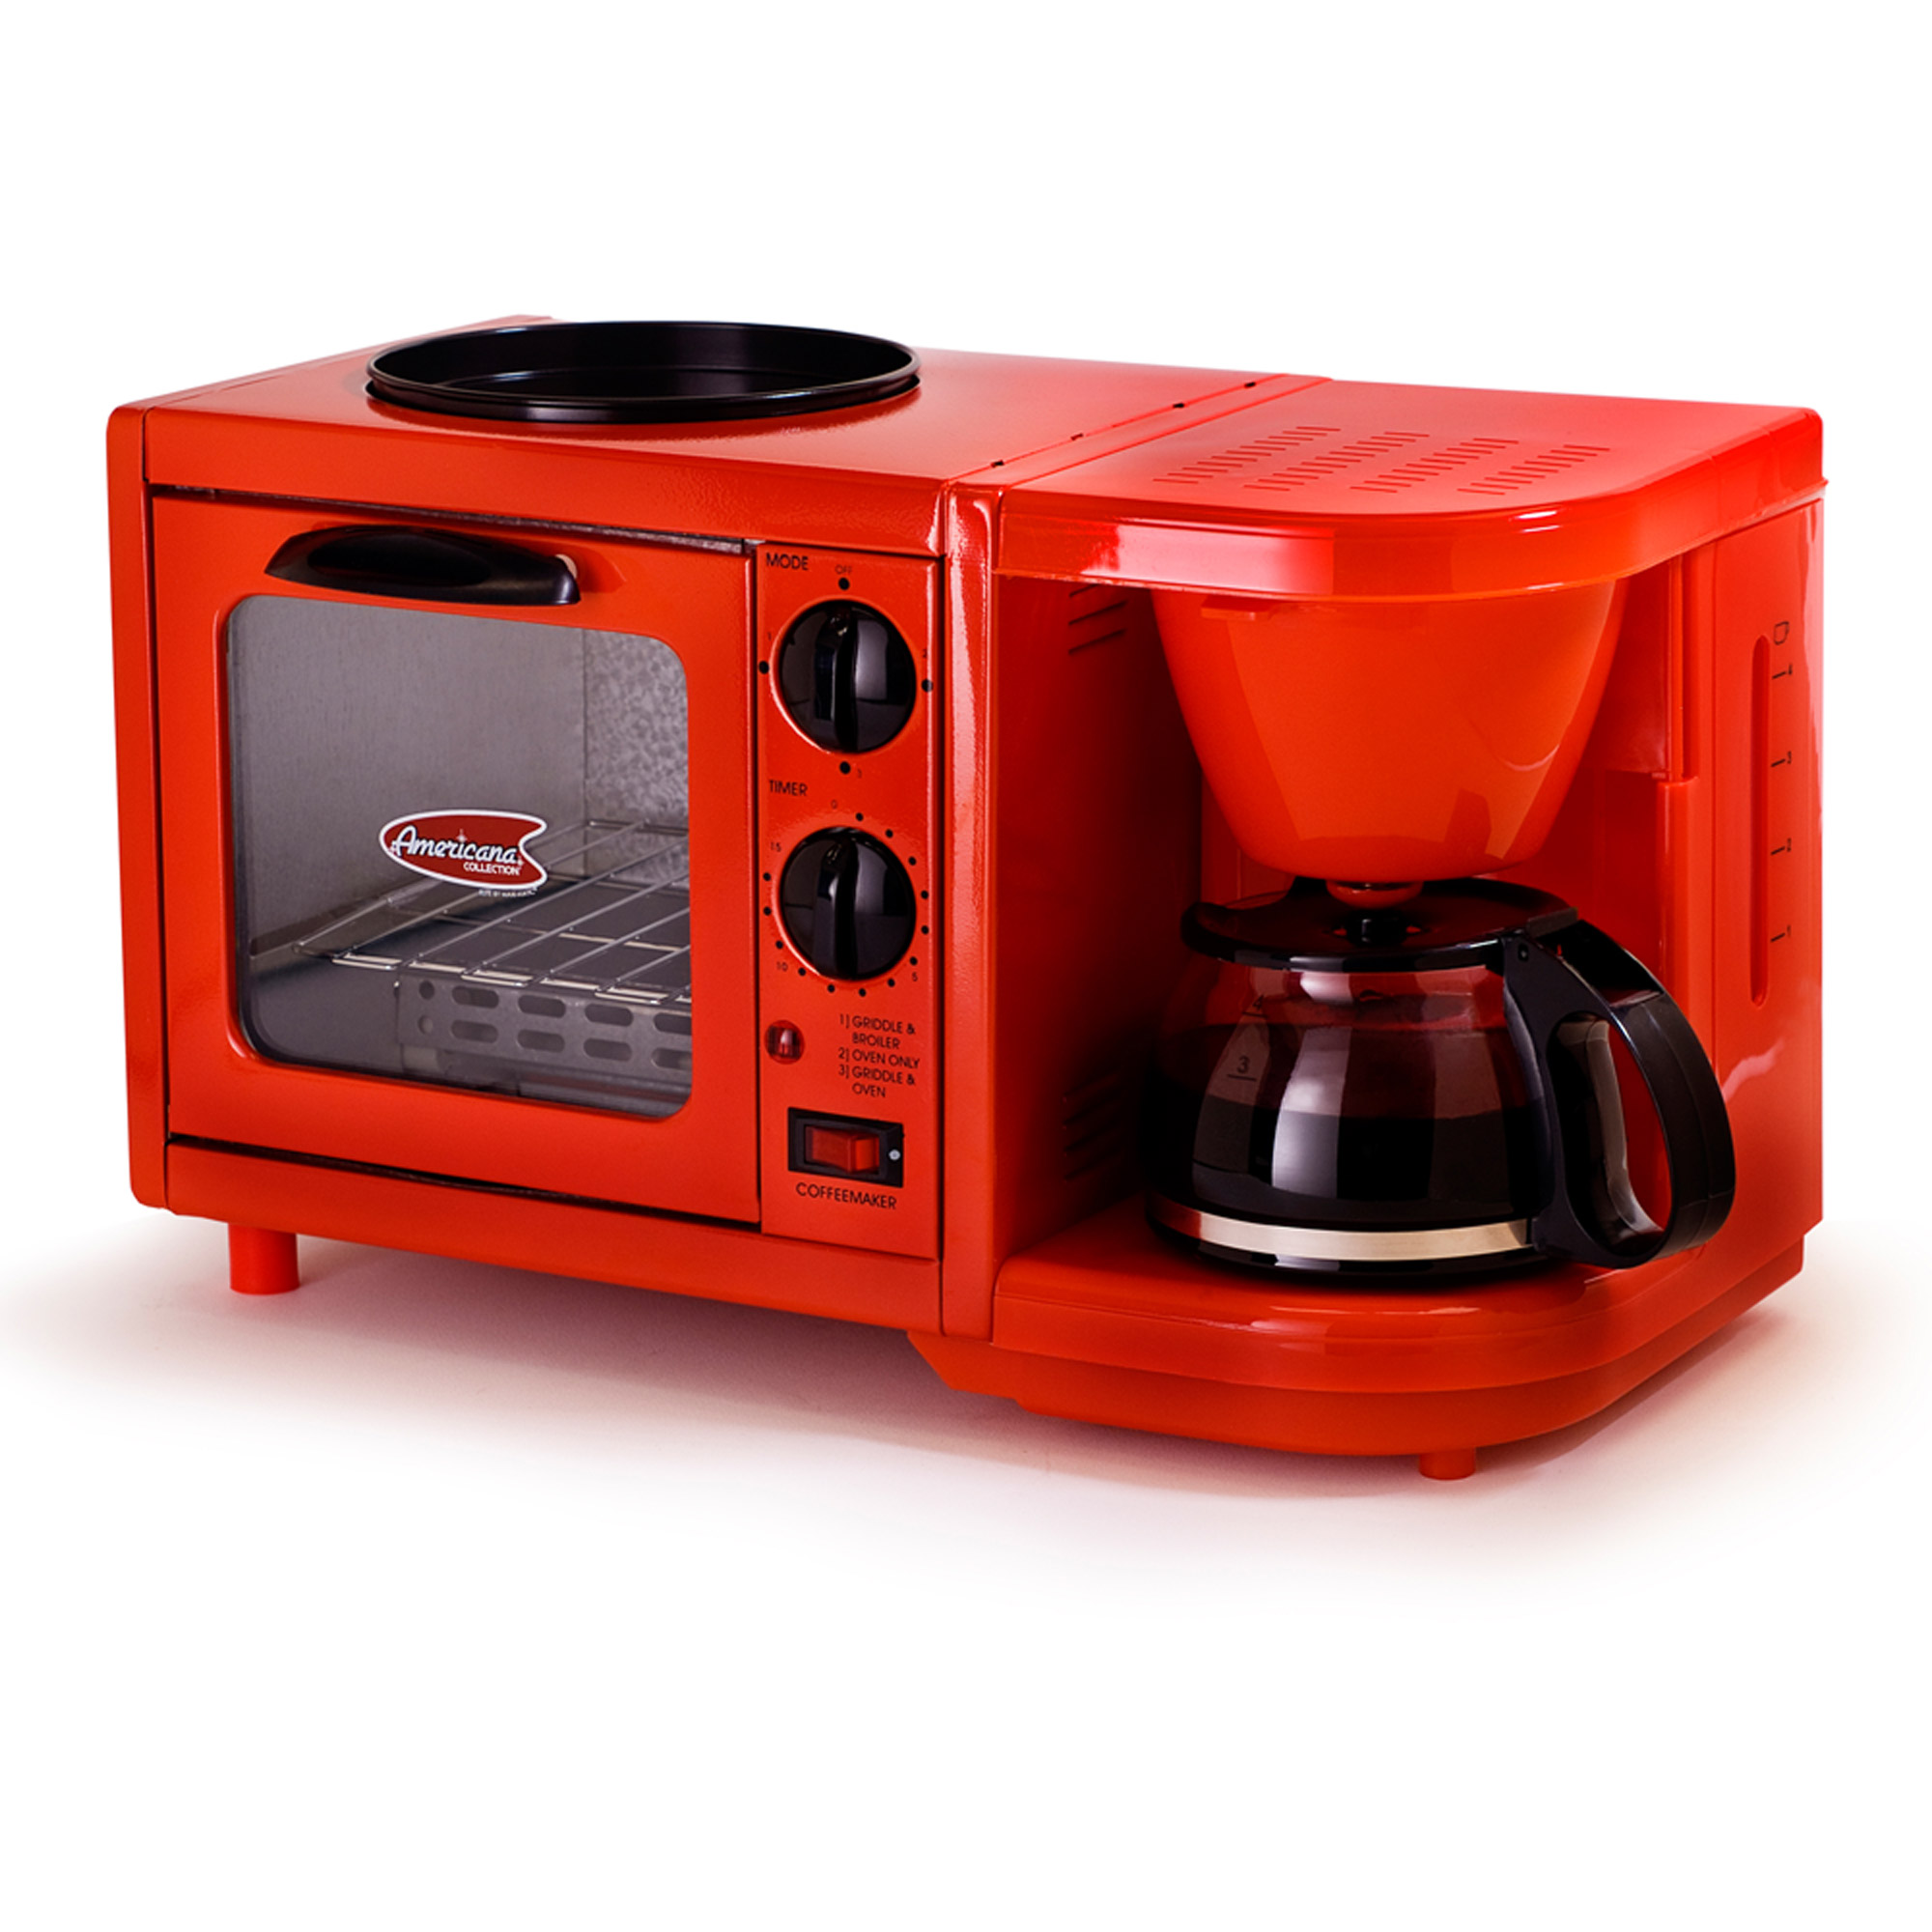 Americana by Elite EBK-200R 3-in-1 Mini Breakfast Shoppe, Coffee, Toaster Oven, Griddle, Robin Red by Maxi Matic